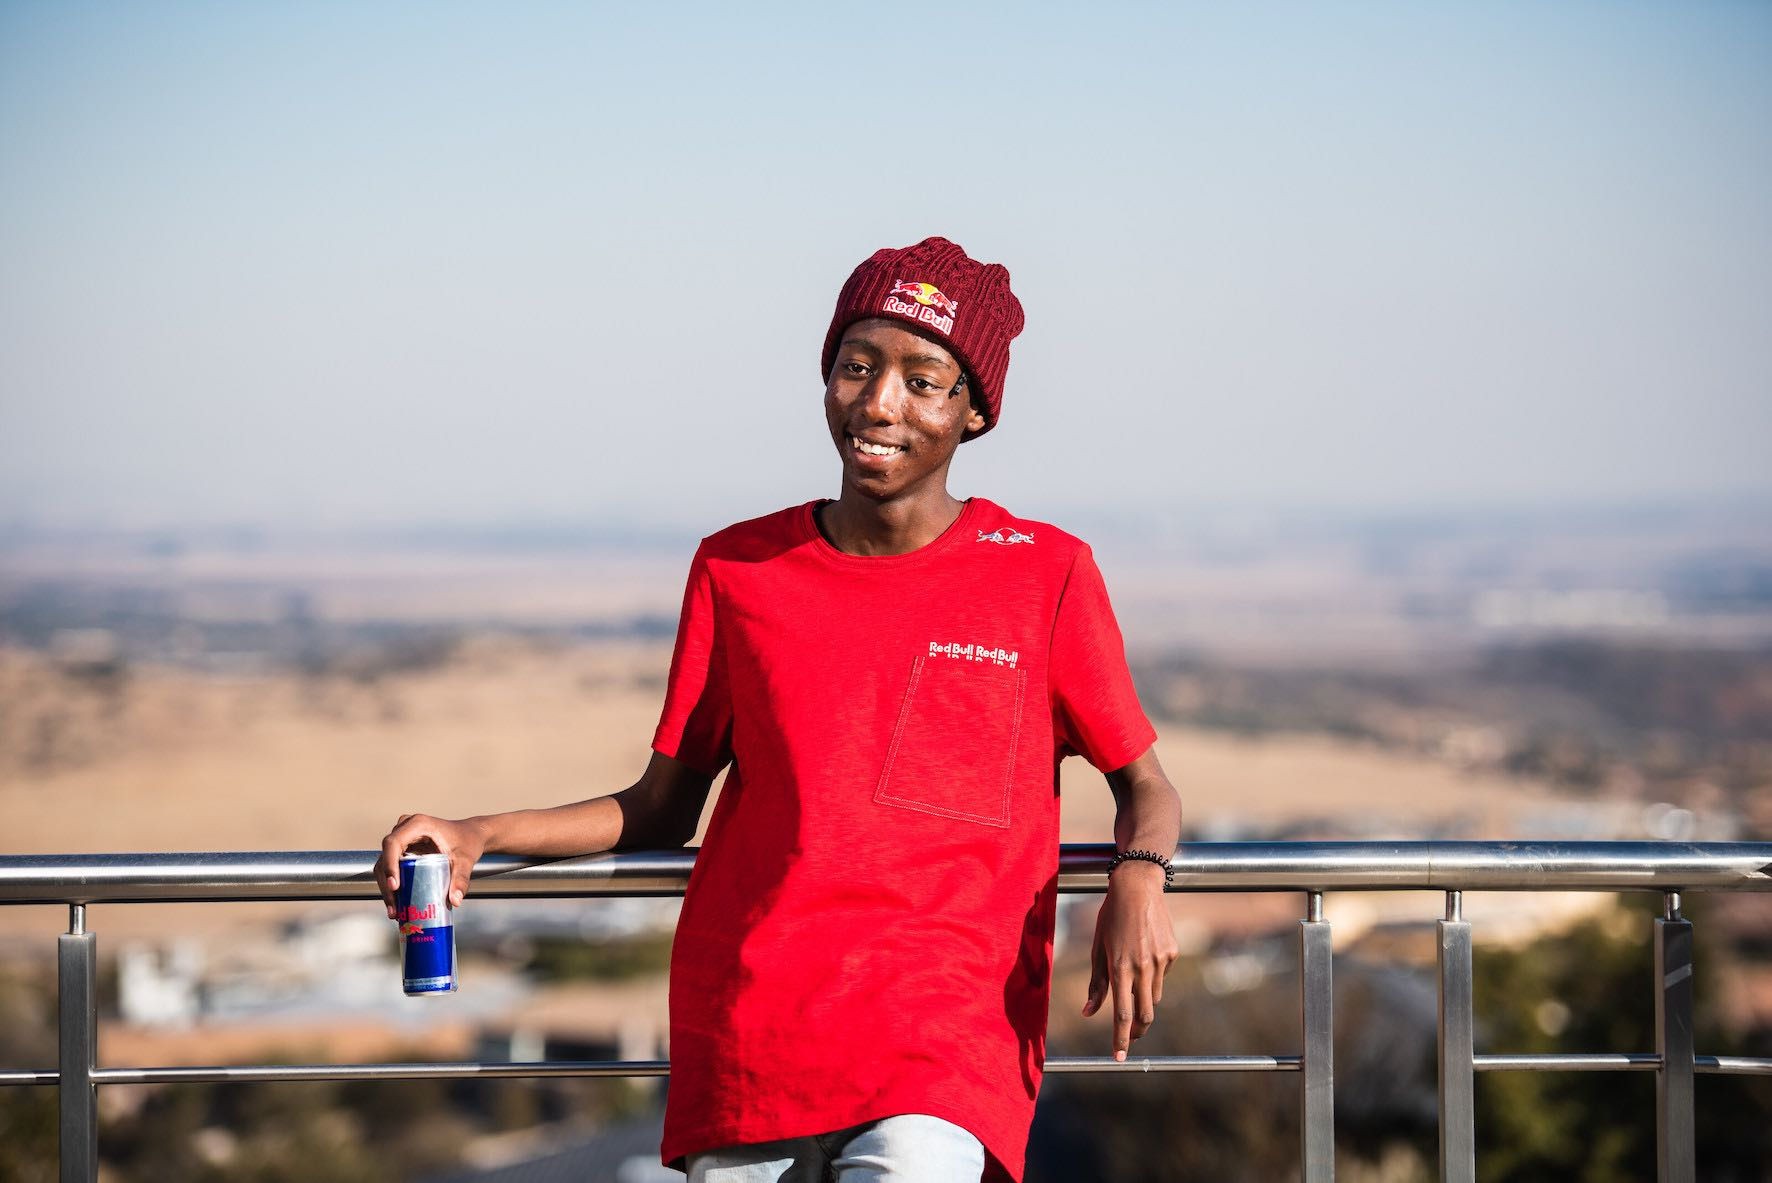 Introducing Thabo Moloi as the first Red Bull Esports Athlete on the continent.